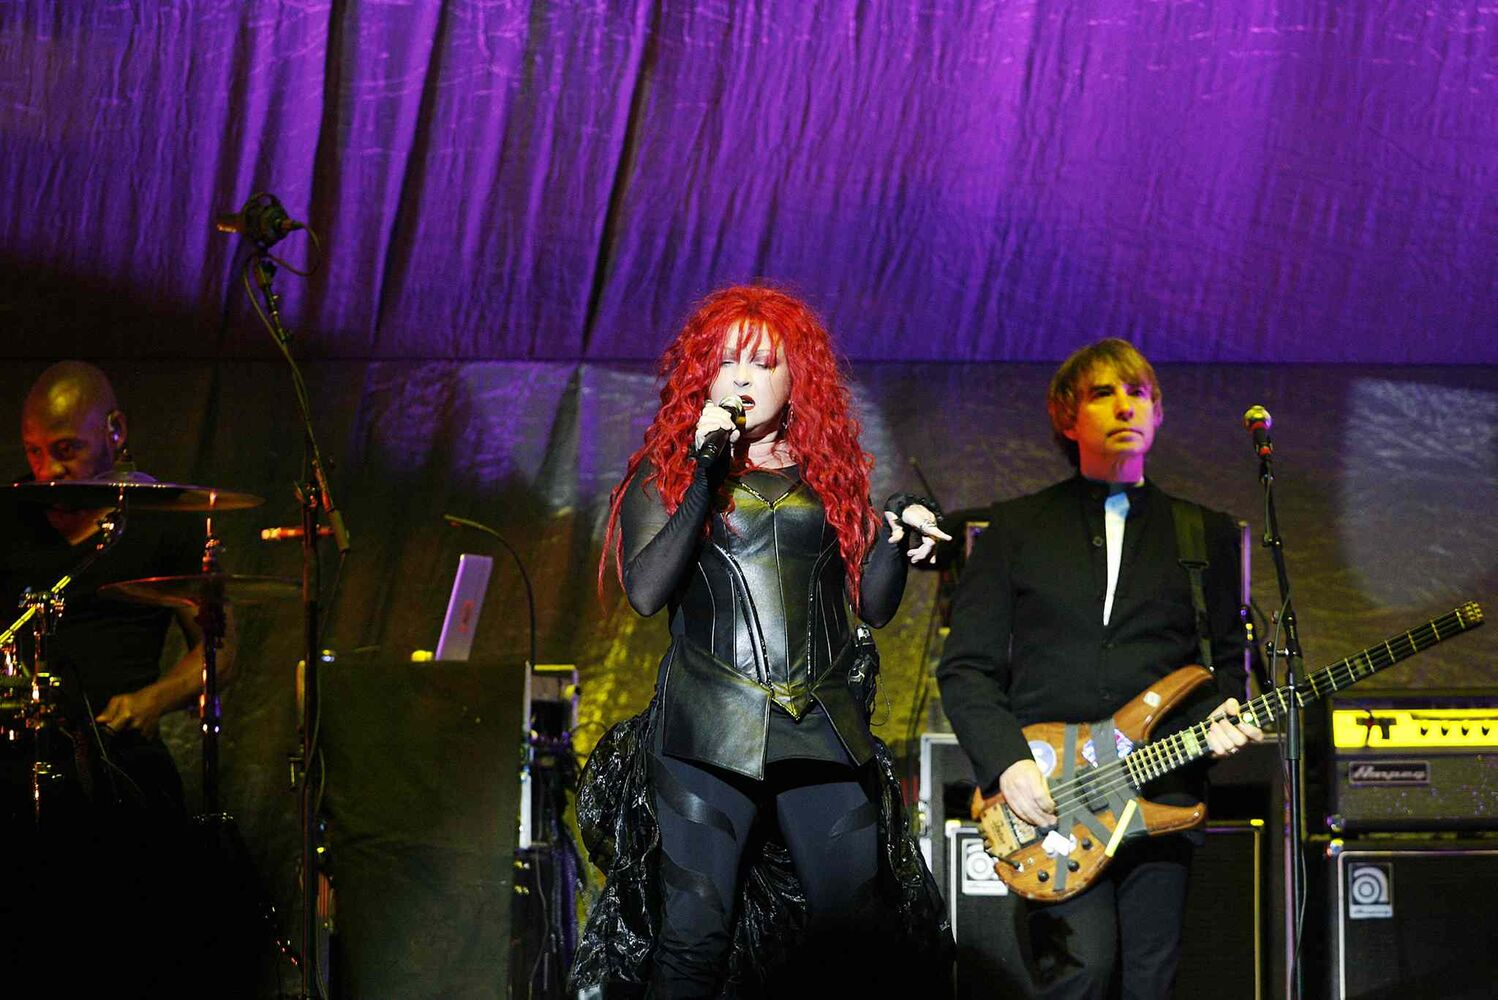 Opener Cyndi Lauper's set was part high-energy songs, party comedy routine.